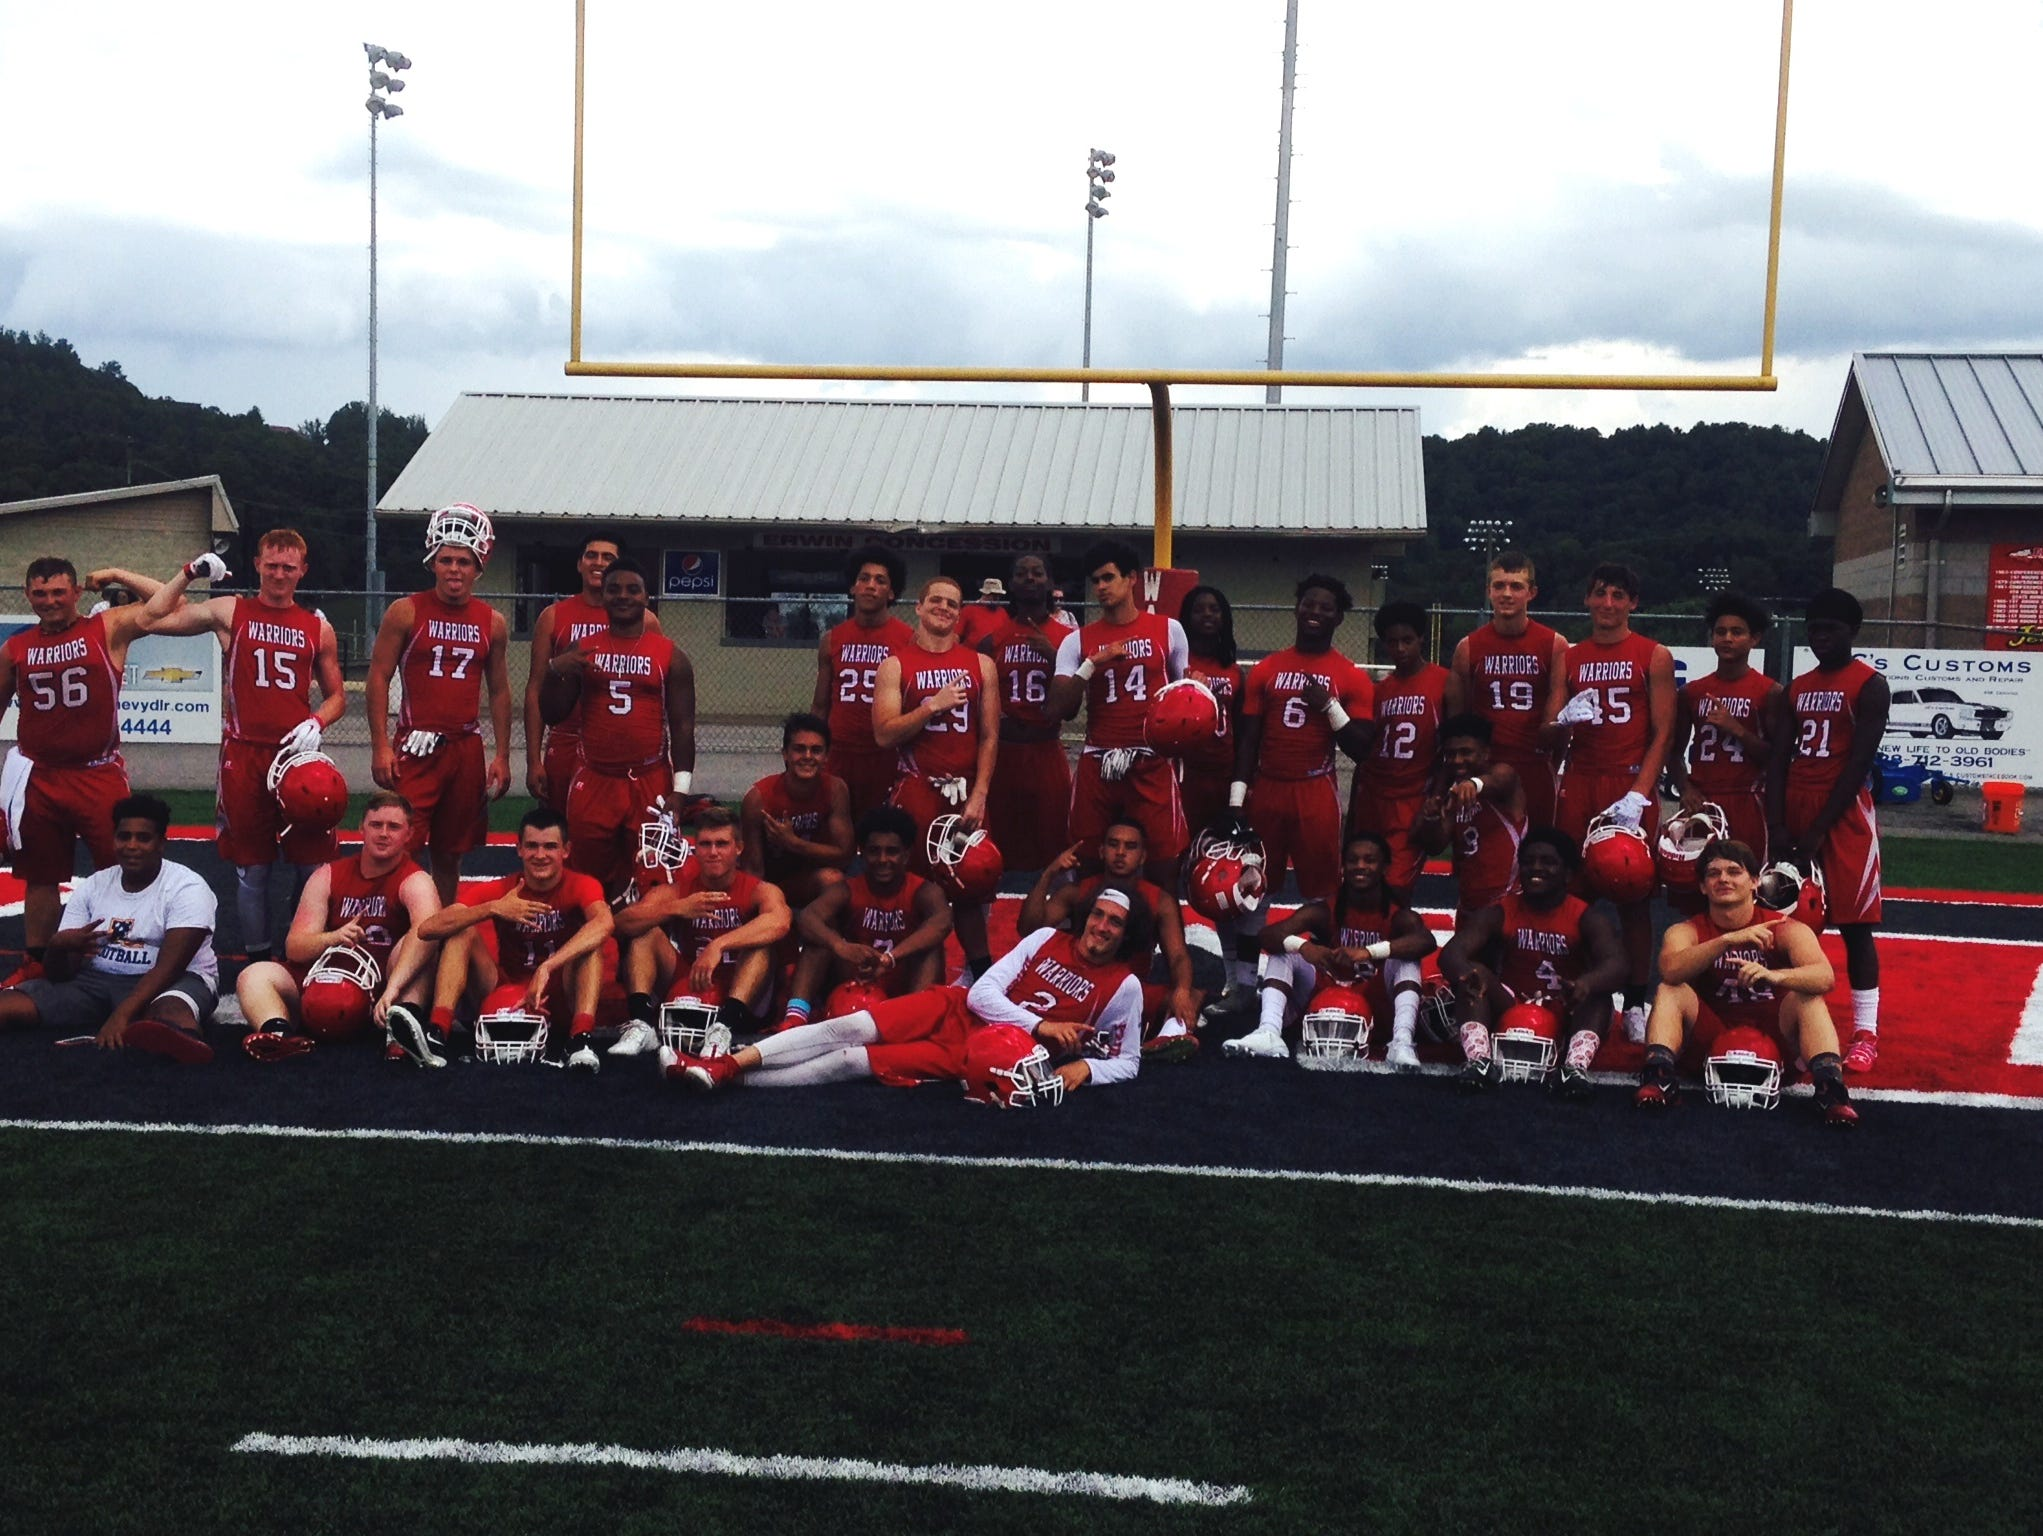 Erwin went 5-0 as the host in its games at Tuesday's Warrior 7-on-7 football tournament.